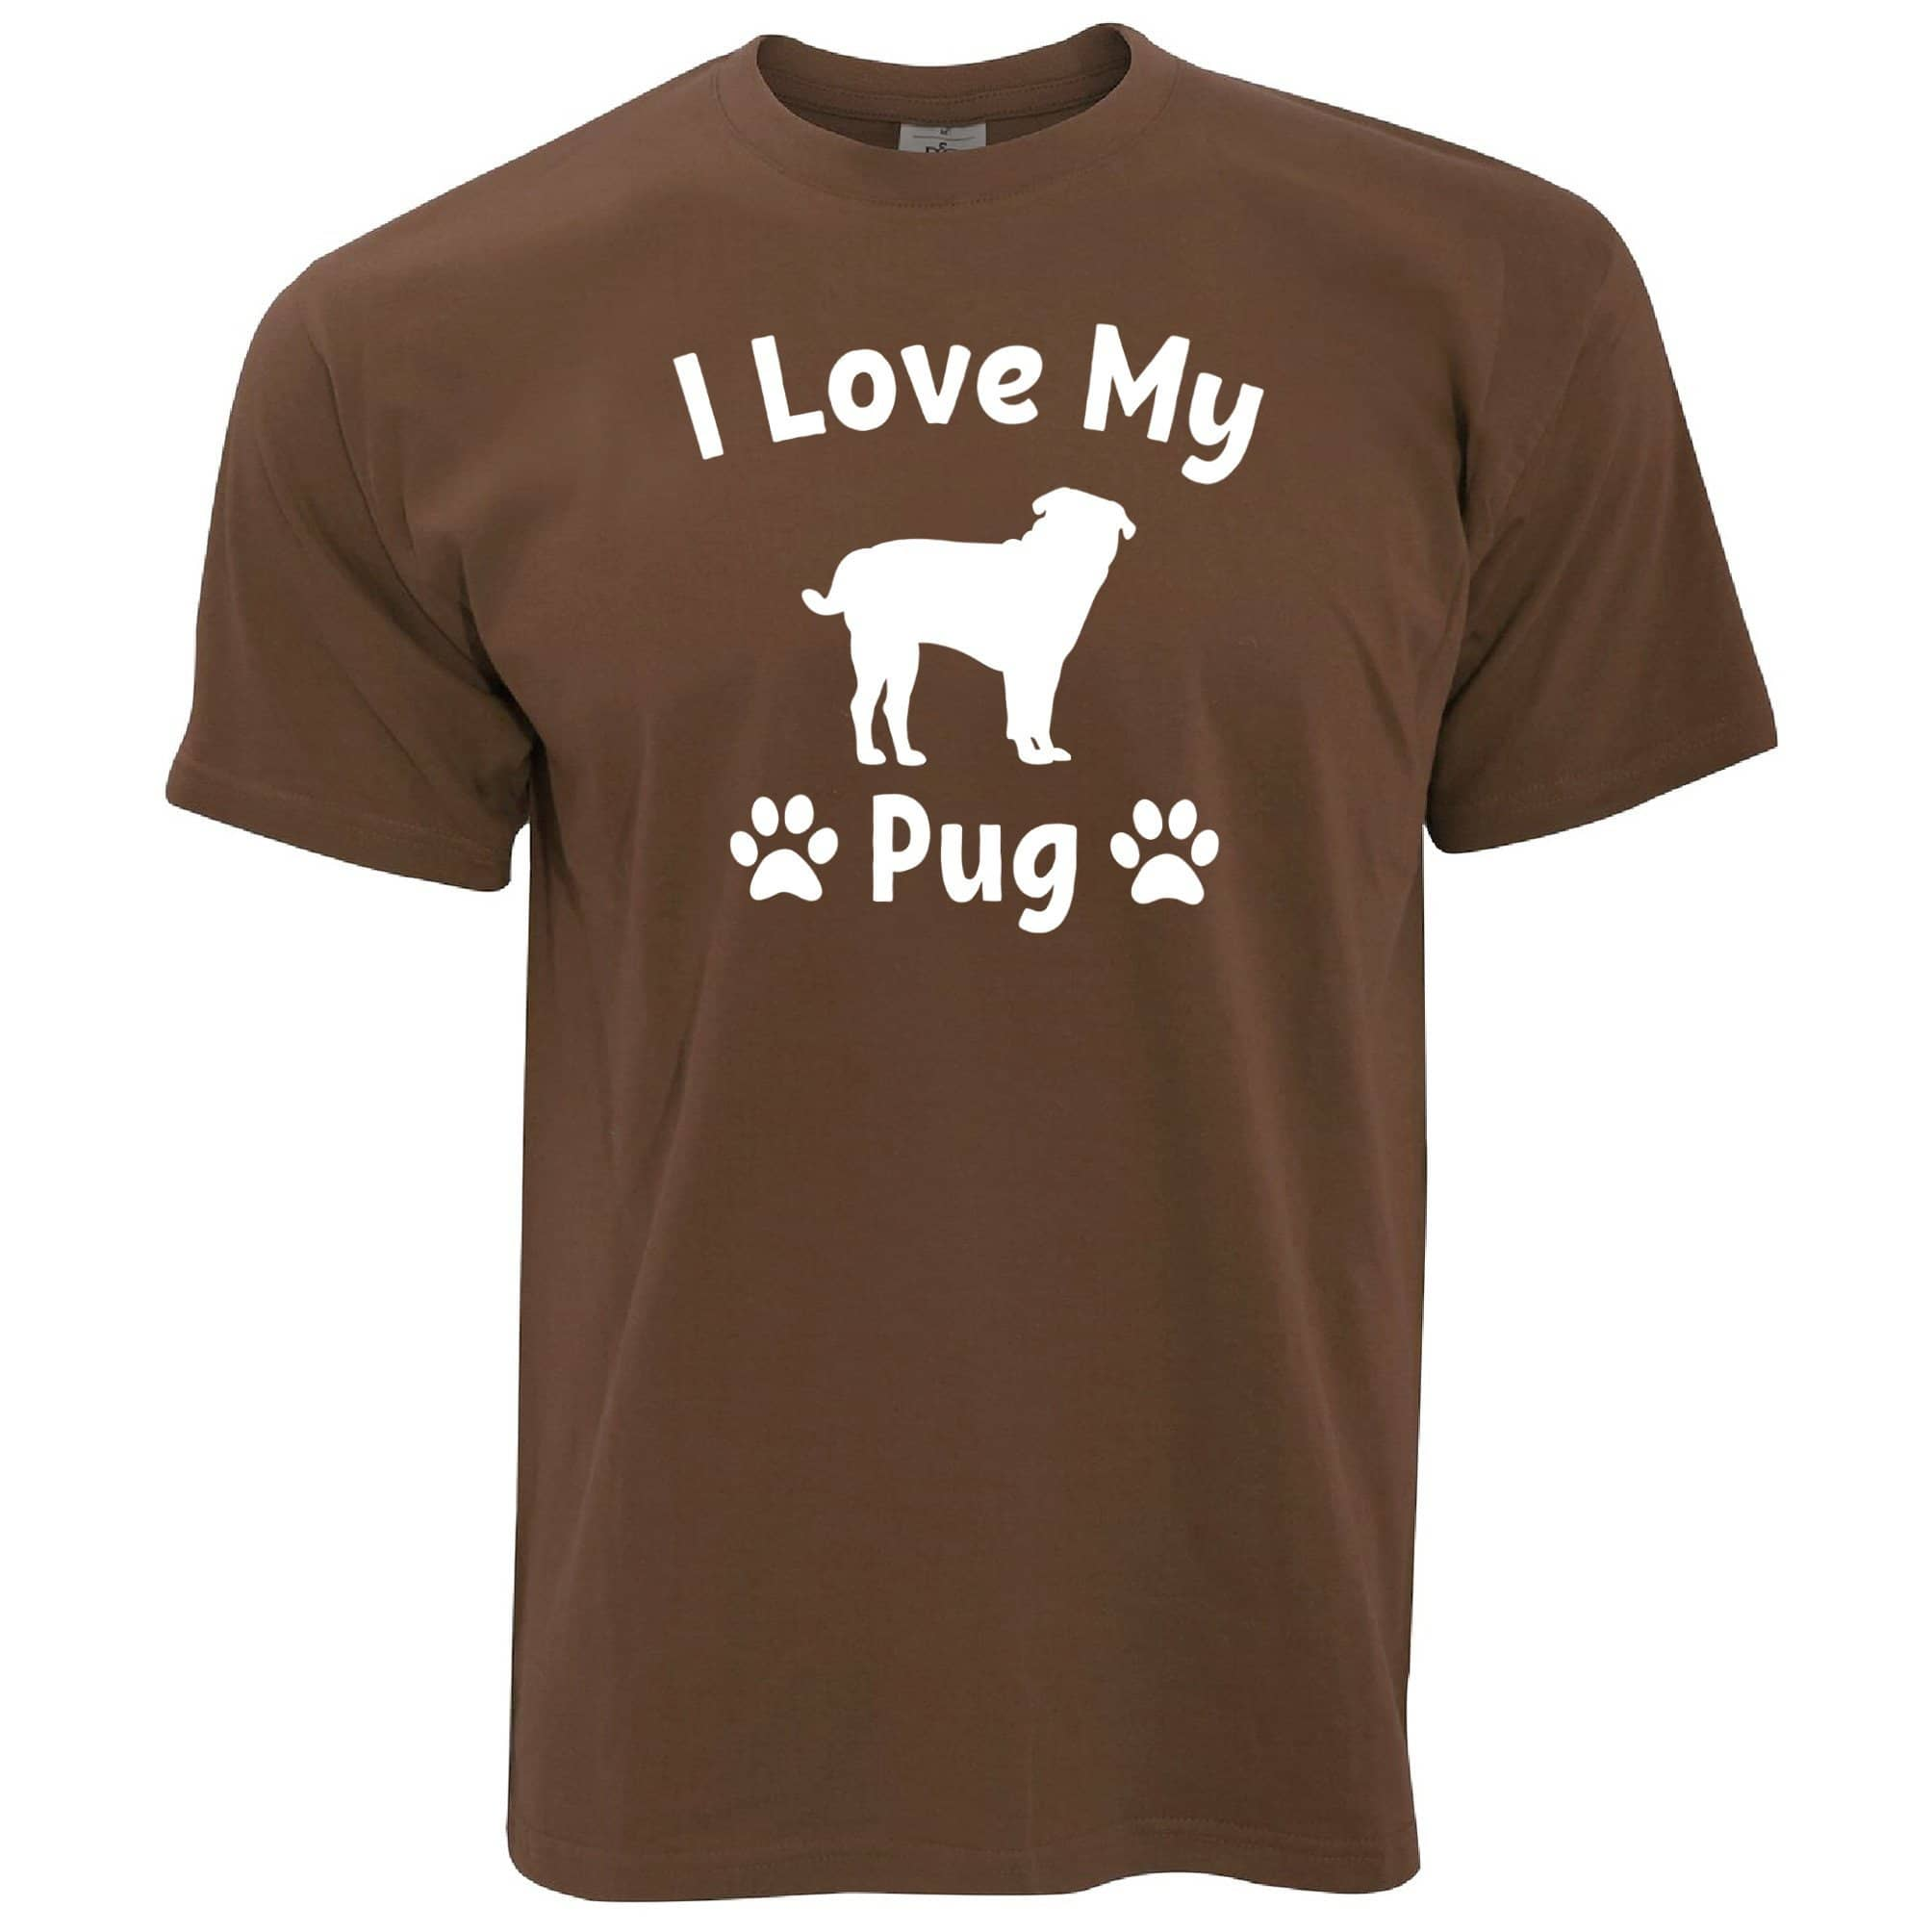 Dog Owner T Shirt I Love My Pug Slogan